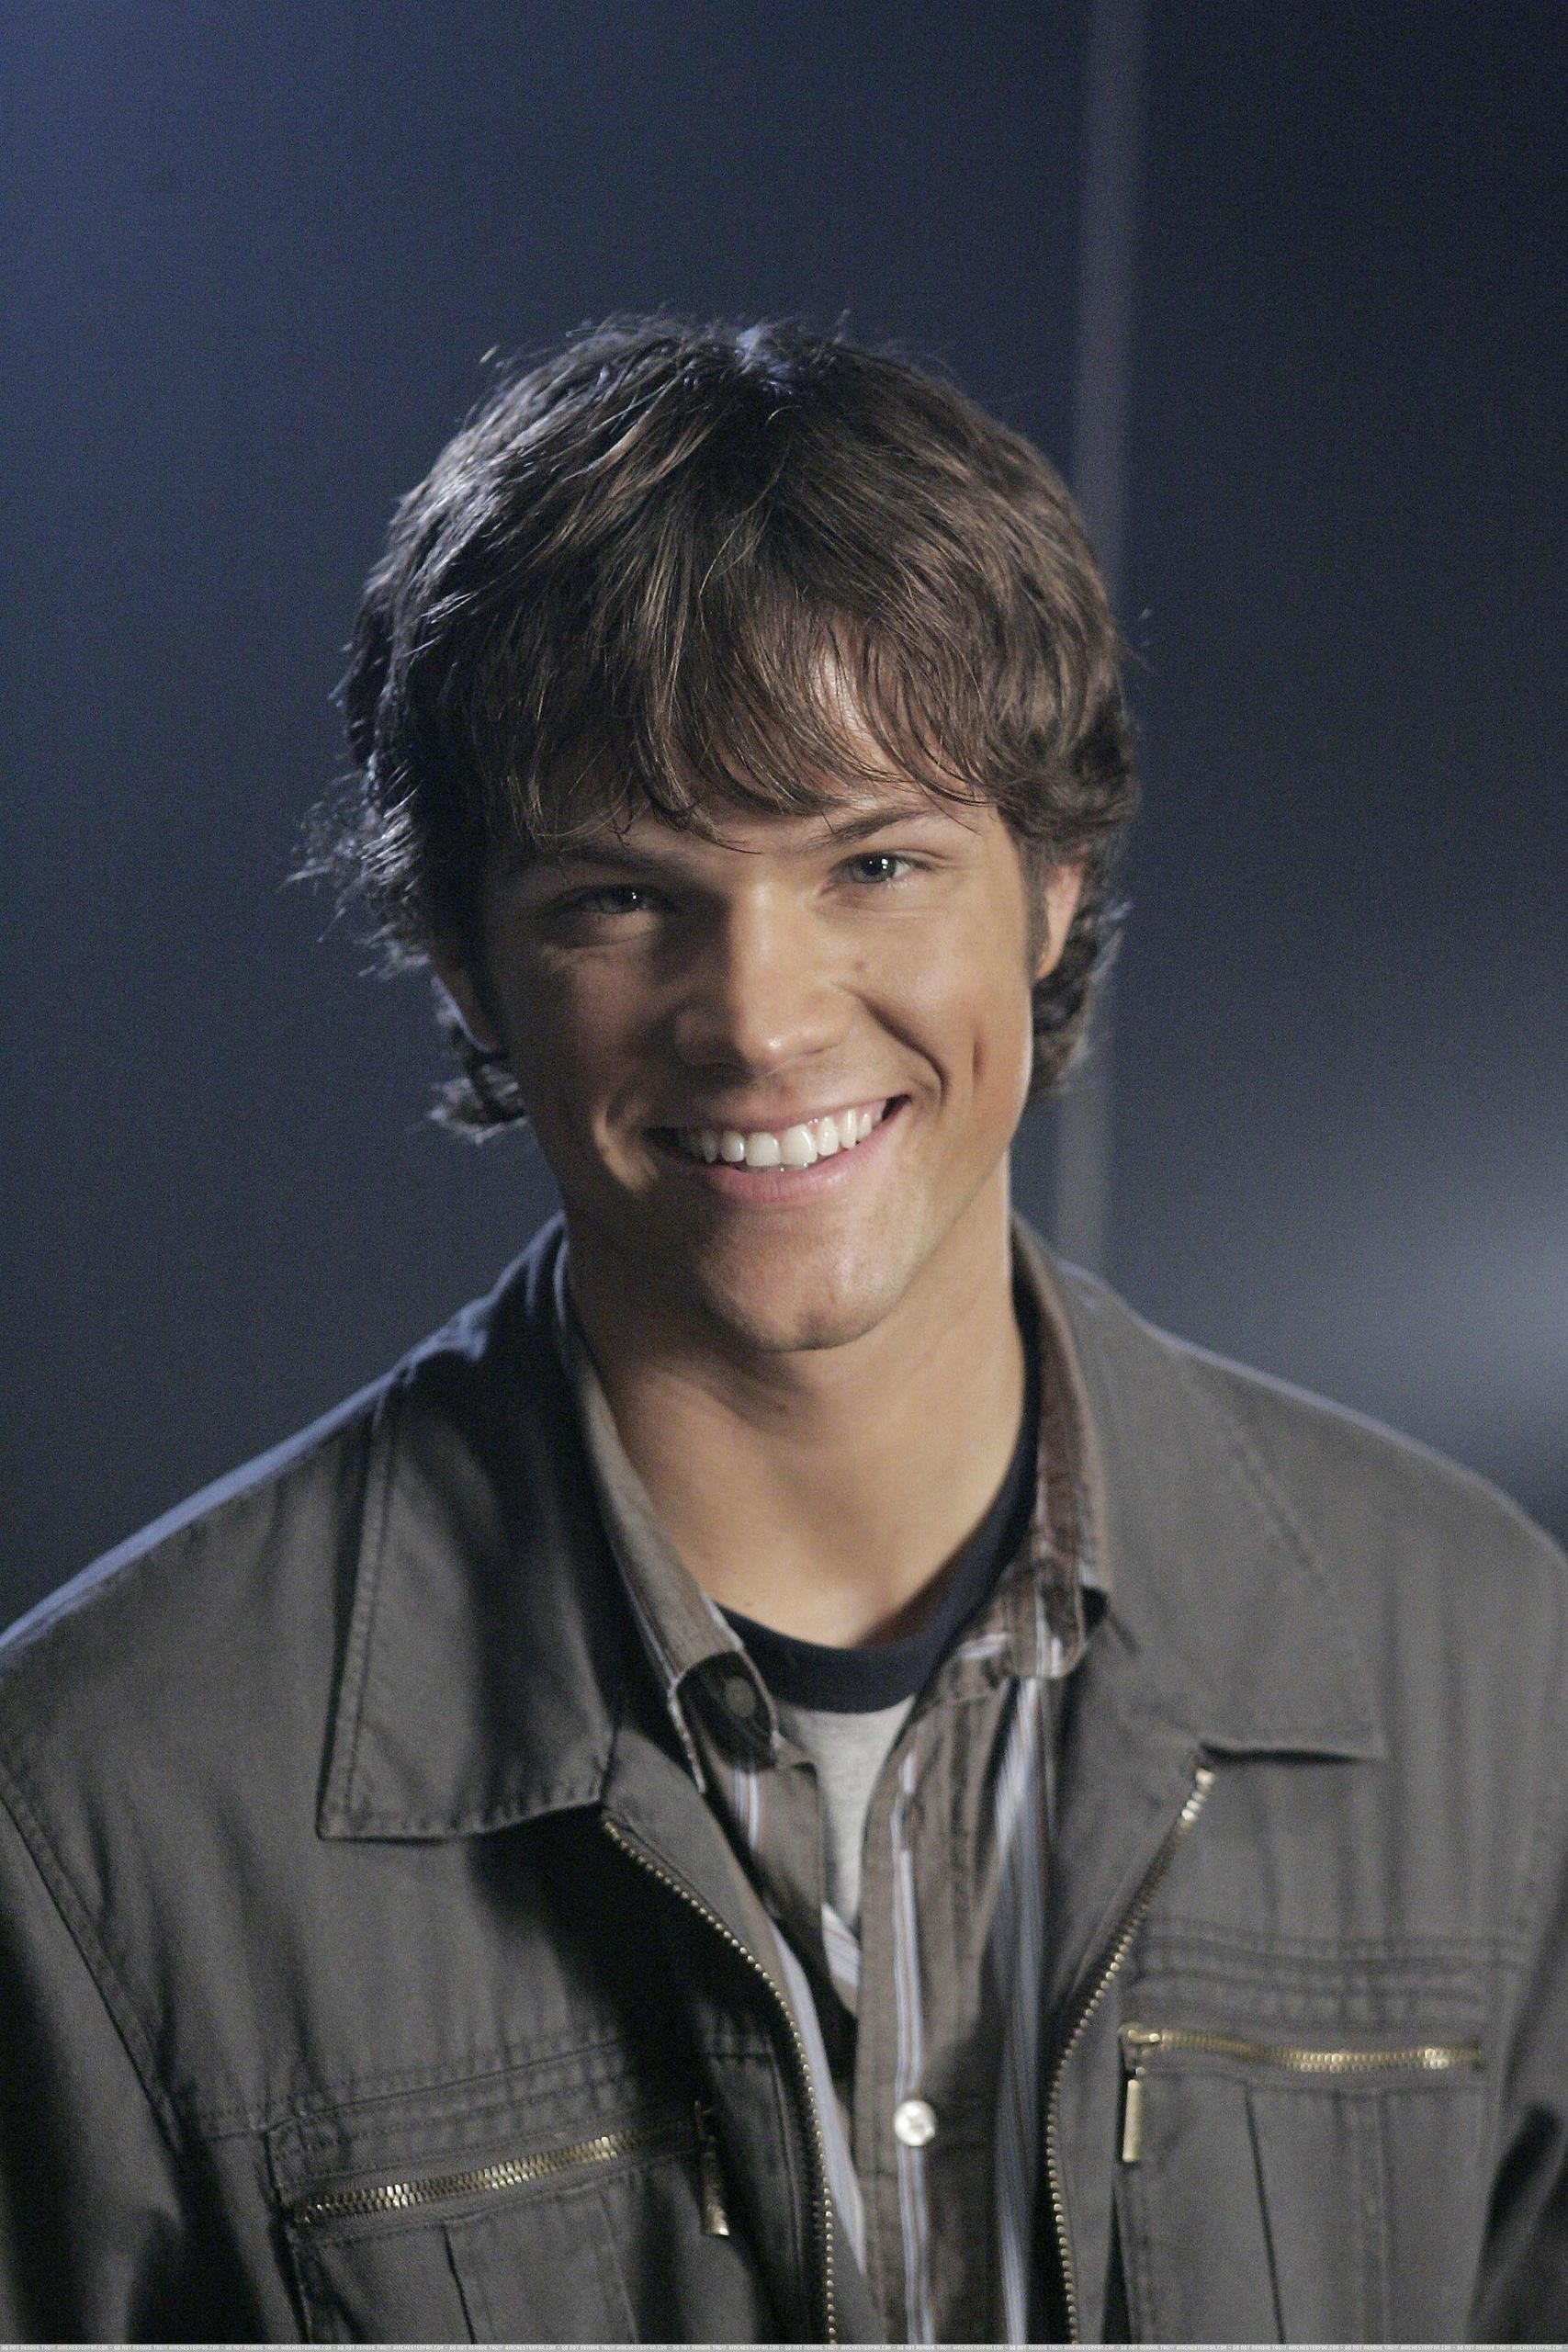 I'm obviously a dean girl but college sam was a cutie.